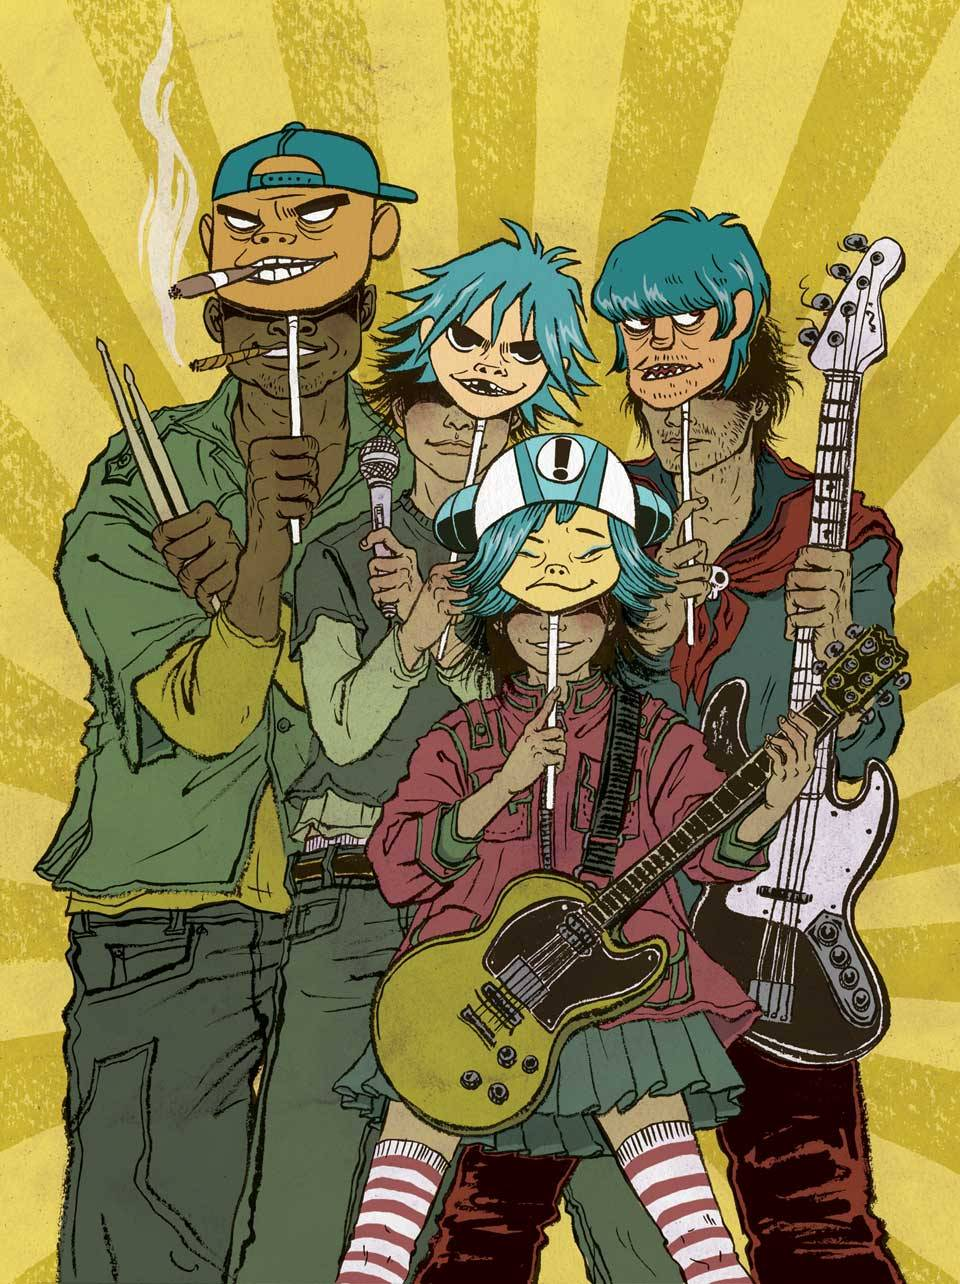 veilchendystopia:  SPIN  January 2006  Cartoon band Gorillaz's Feel Good Inc. was the 2005 single of the year the image was later used as cover for Indonesian illustration magazine BabyBoss.